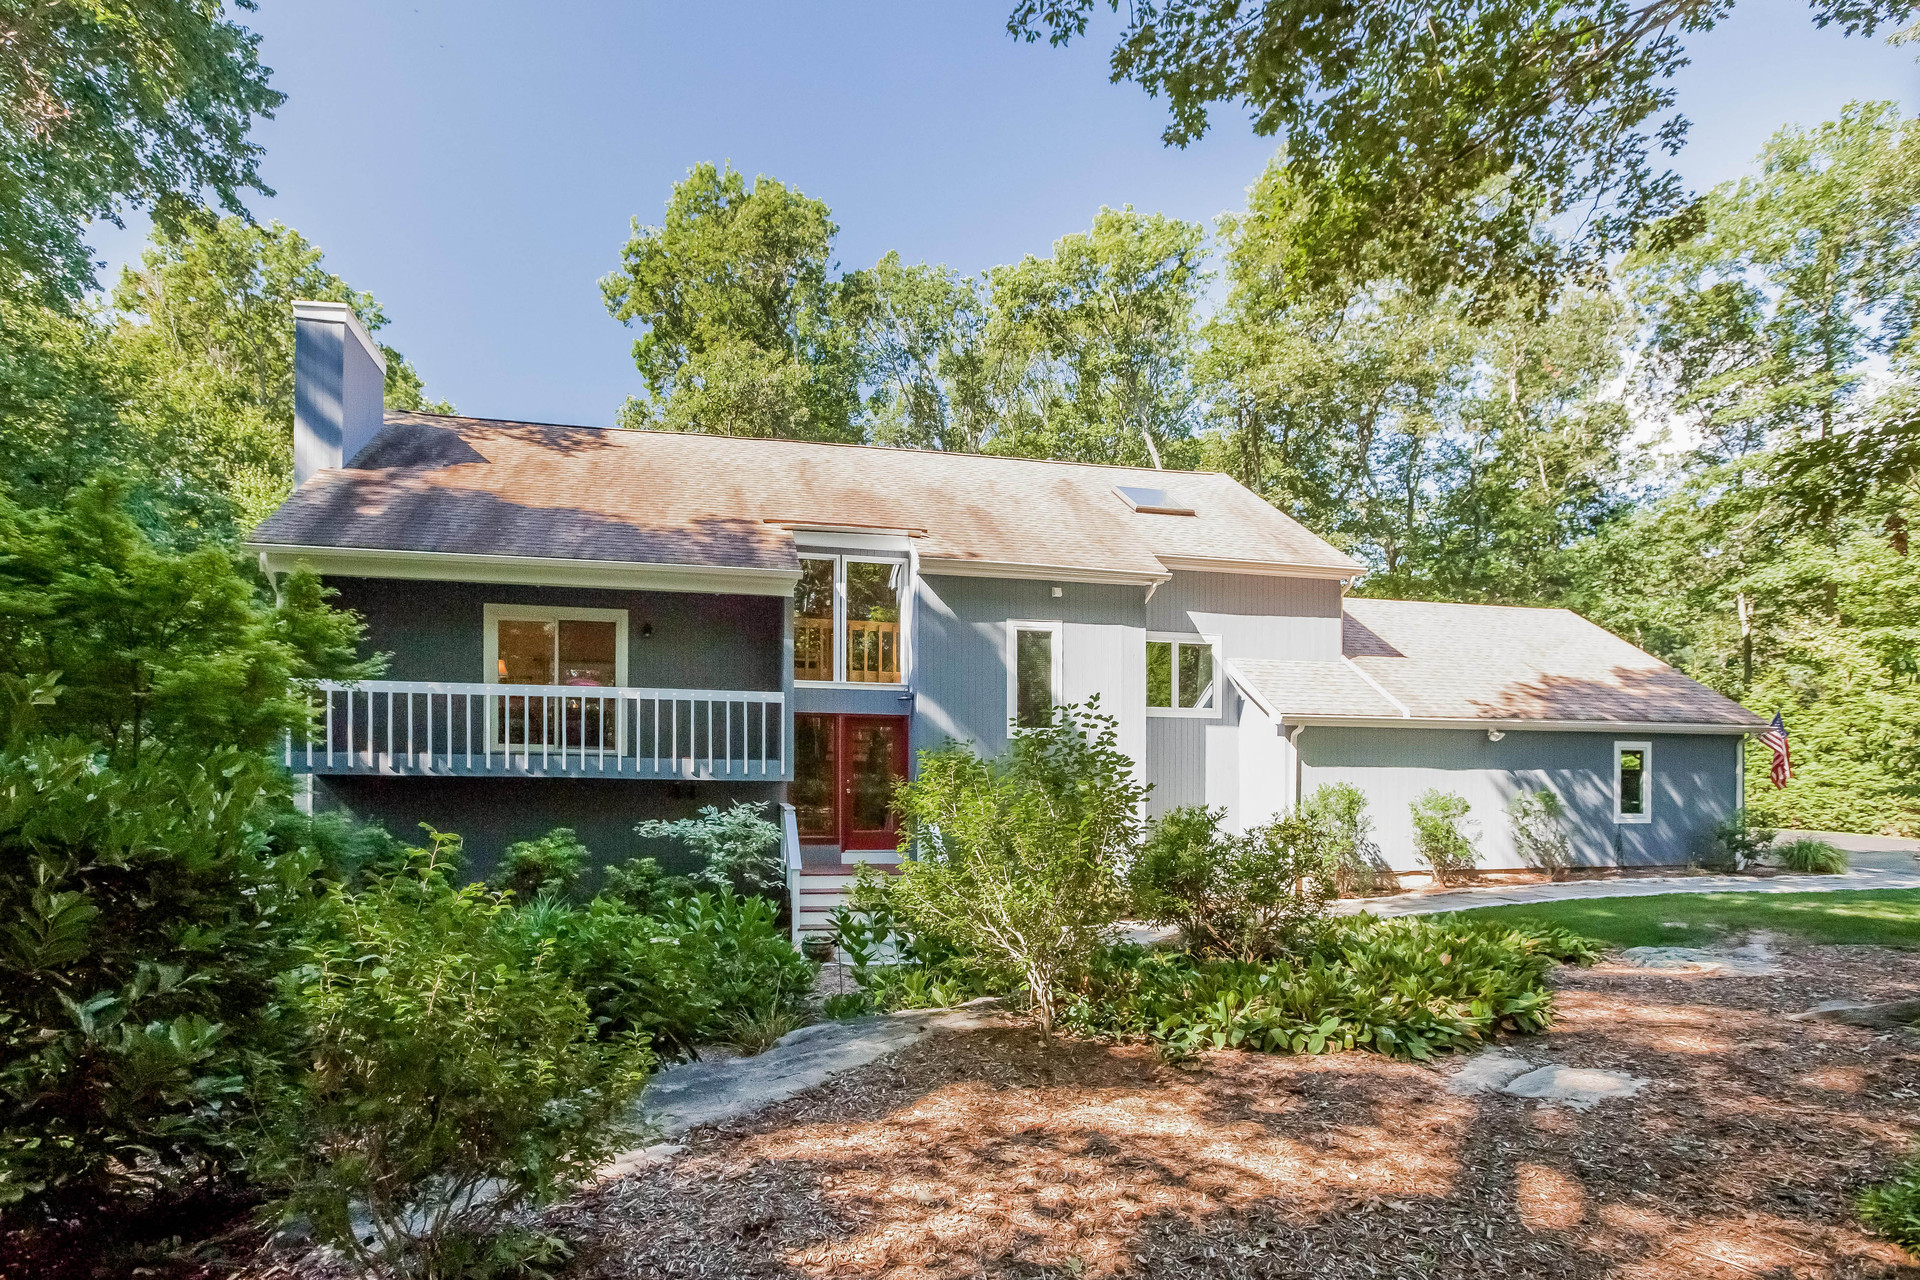 Single Family Home for Sale at 312 Peddlers Rd Guilford, Connecticut, 06437 United States